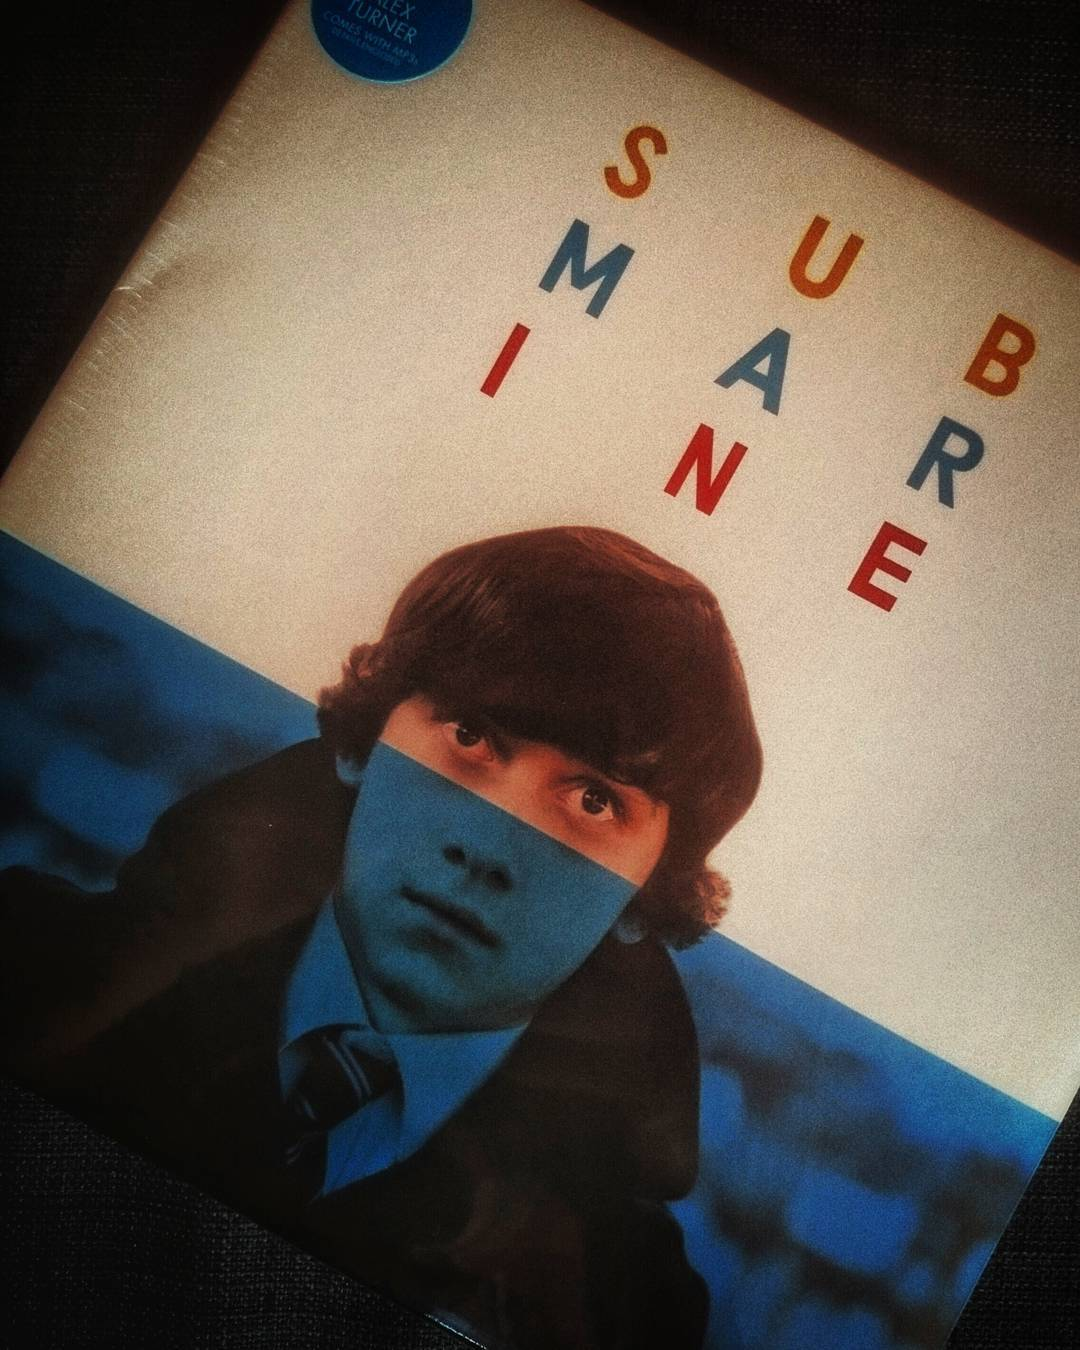 Bday gift from @psilos00 .  Alex Turner's OST for the wonderful Richard Ayoade's film submarine.  #submarine #vinyl #10inches #alexturner #ost #music